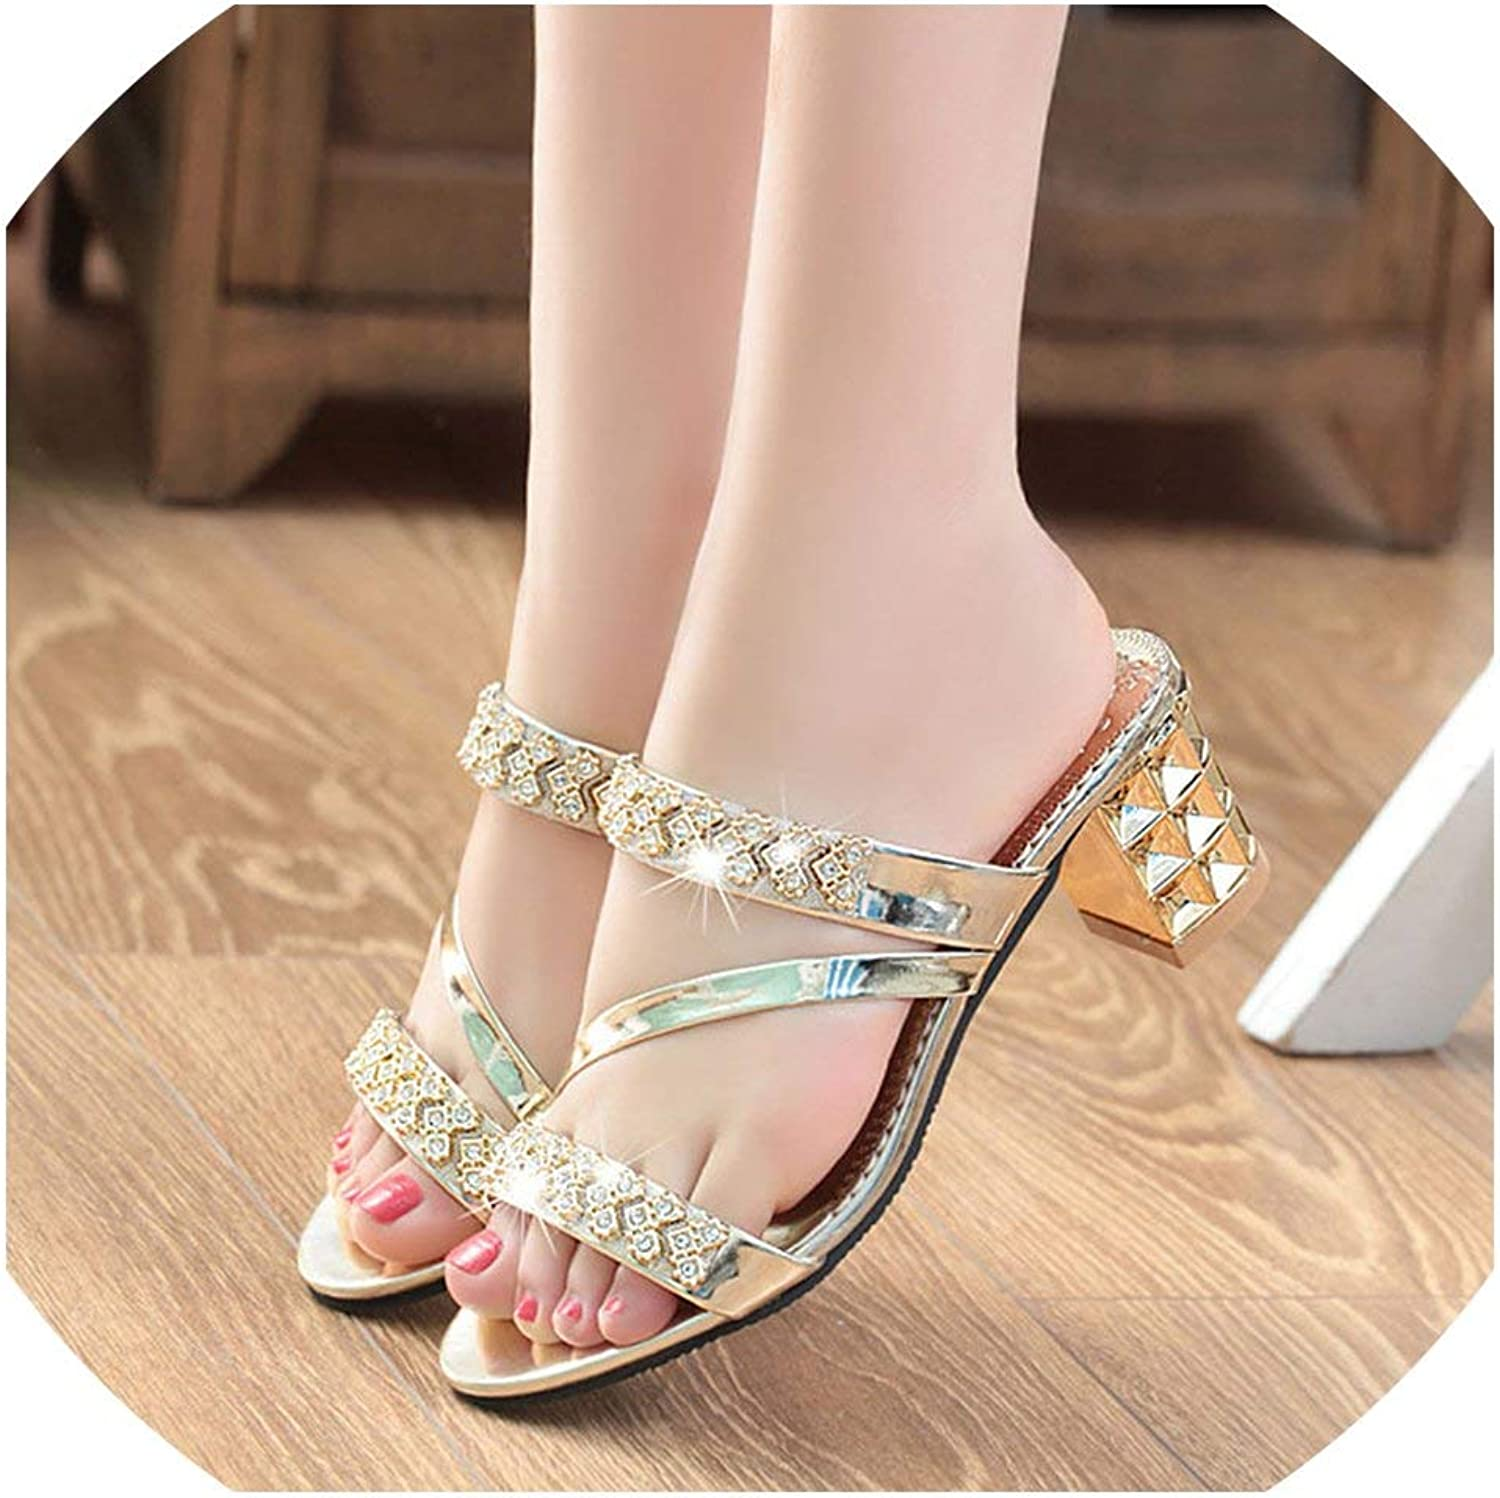 2019 Summer Women shoes Square Heel Sandals Peep Toe Ladies shoes Brand High Heel Sandals